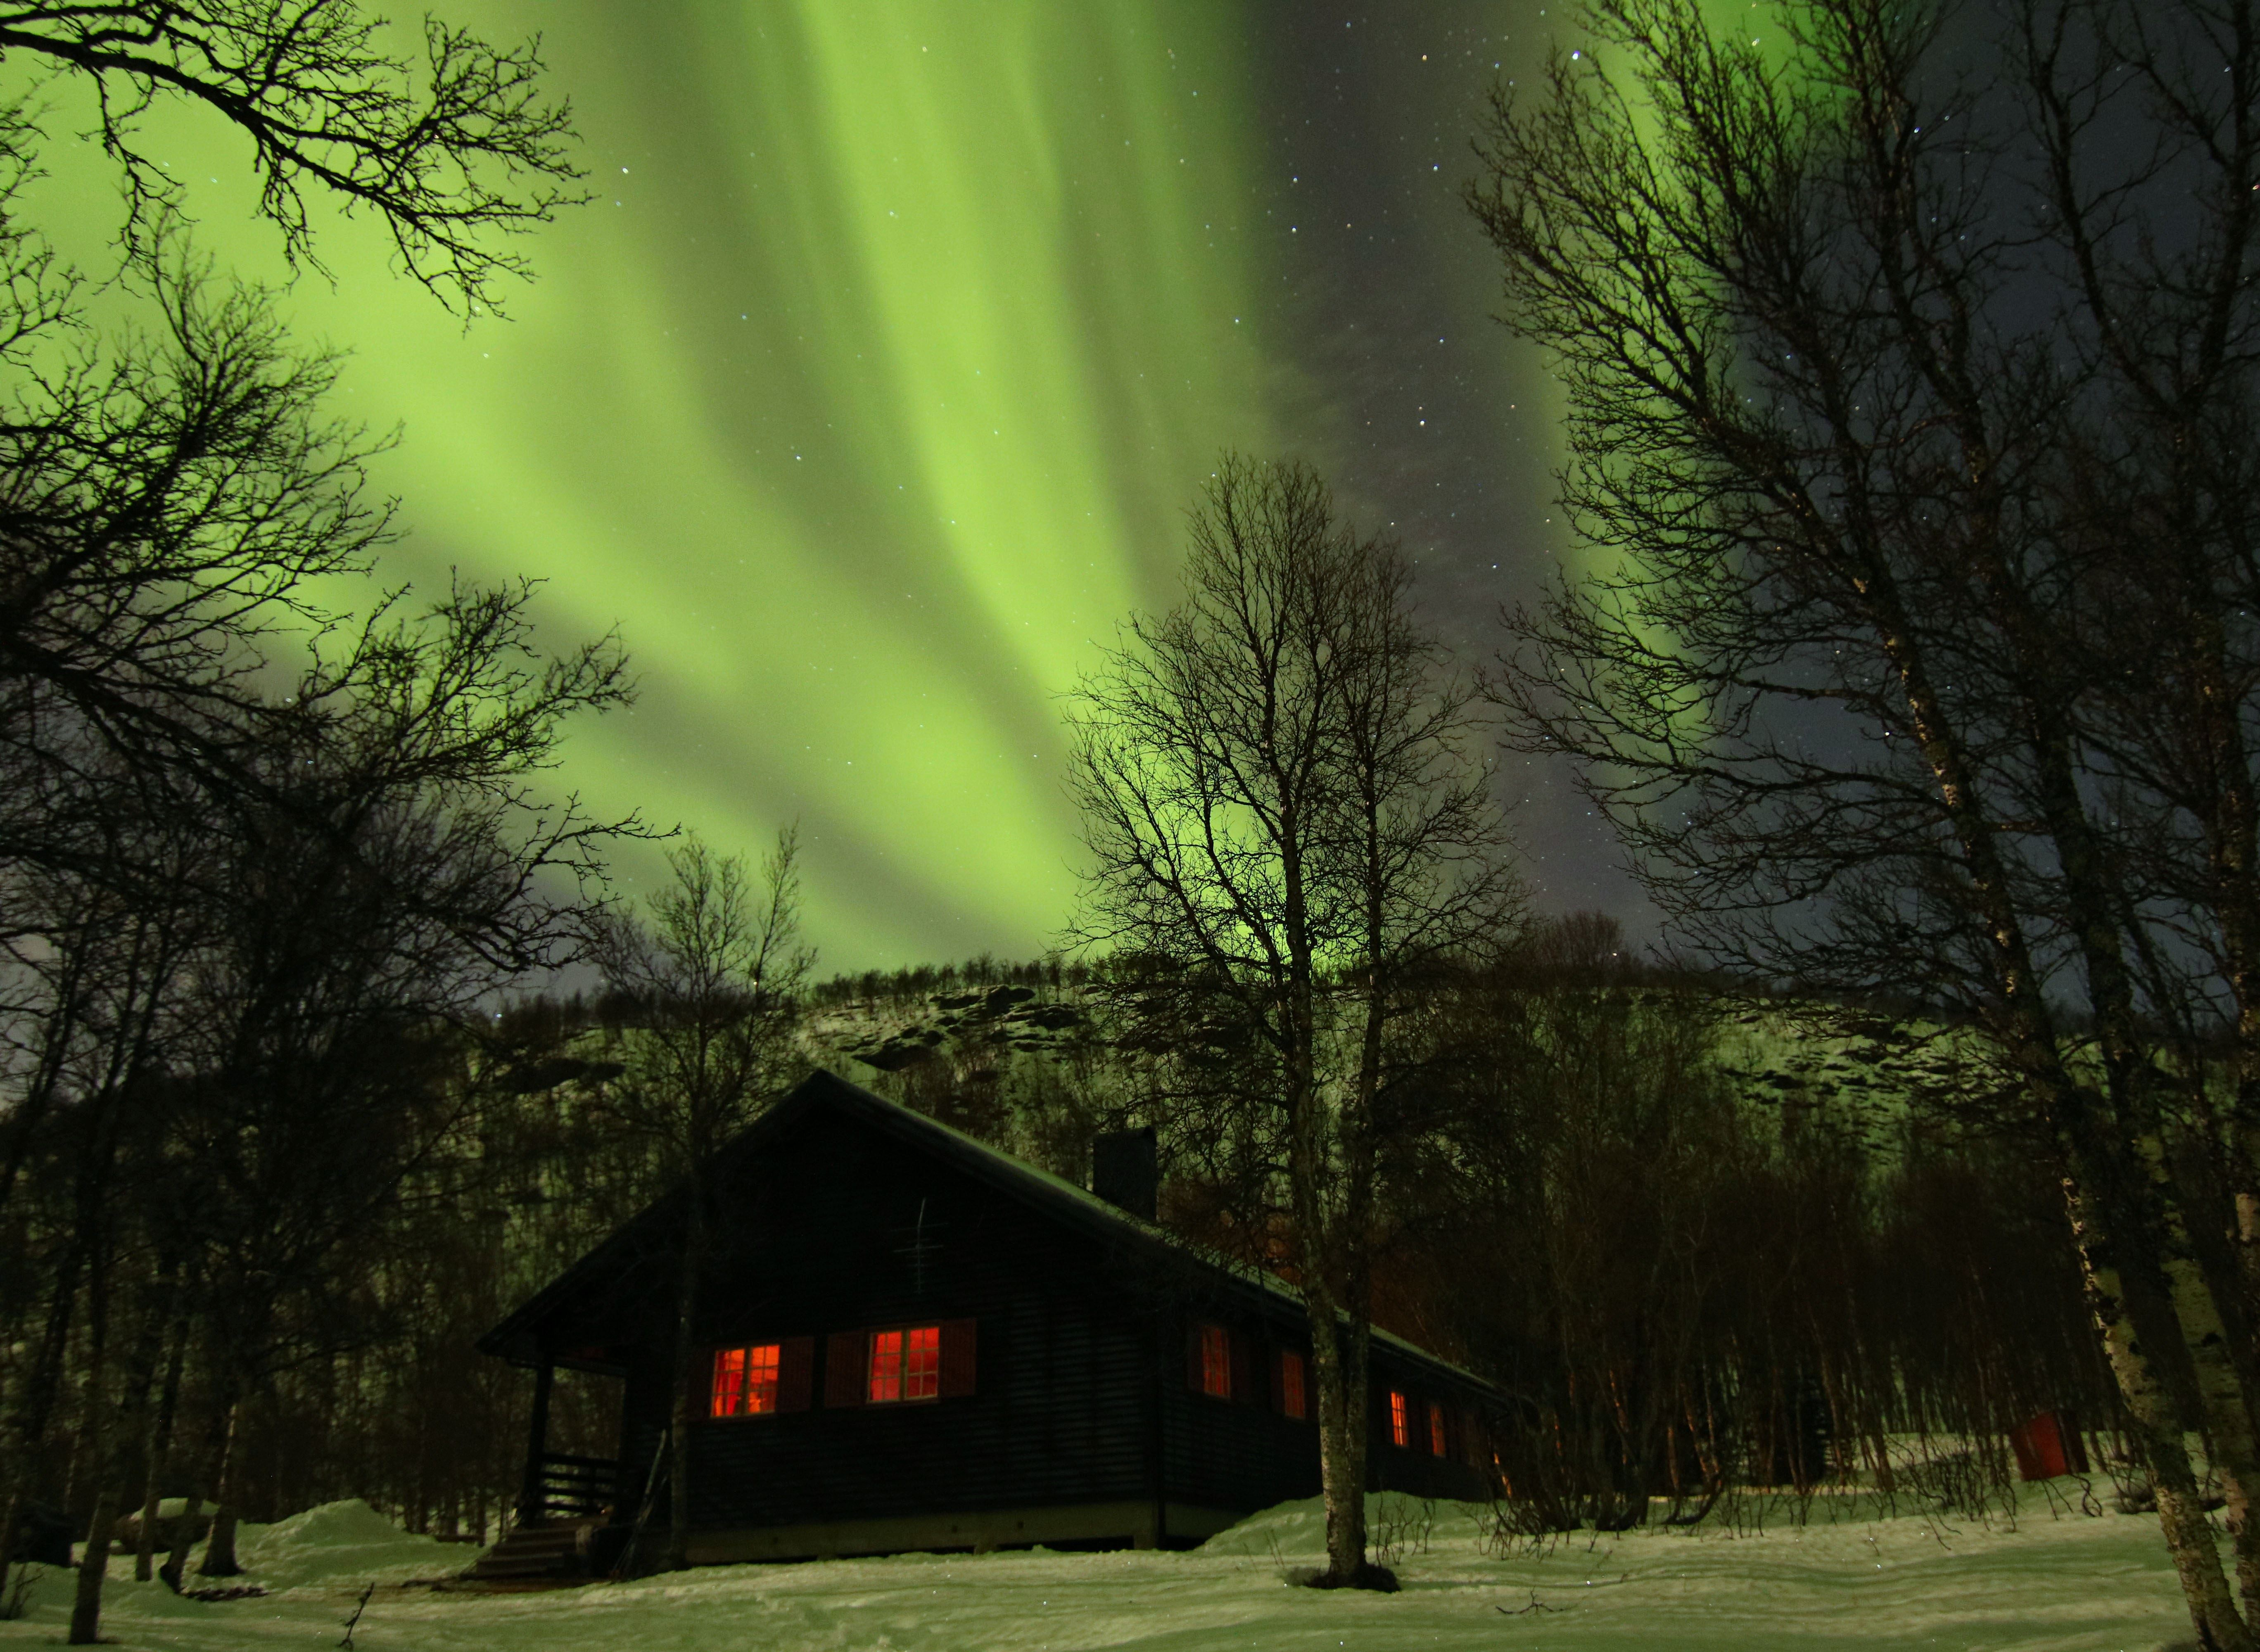 !SPECIAL PACKAGE! 3 Nights at Polar Cabin - All Inclusive - Accomodation, Food and Activities (2-6 people) - Polar Cabin